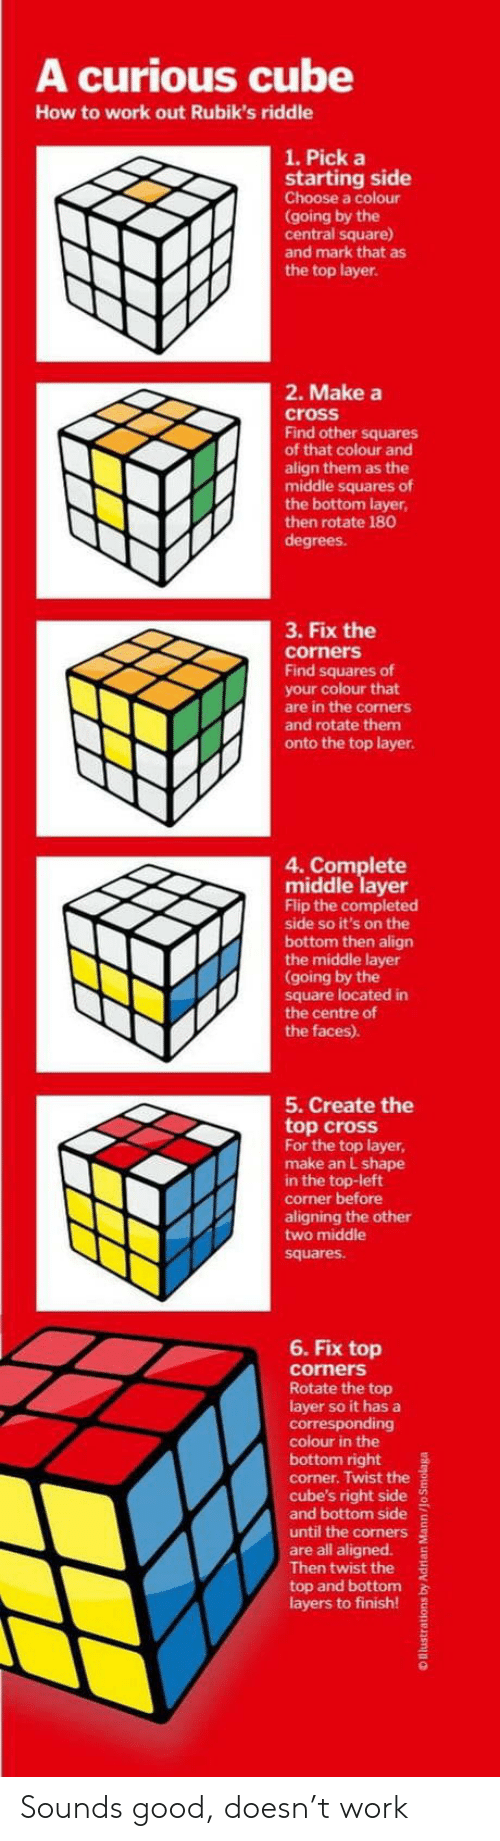 An L: A curious cube  How to work out Rubik's riddle  1. Pick a  starting side  Choose a colour  going by the  central square)  and mark that as  the top layer.  2. Make a  cross  Find other squares  of that colour and  align them as the  middle squares of  the bottom layer  then rotate 180  3. Fix the  corners  Find squares of  your colour that  are in the corners  and rotate them  onto the top layer  4. Complete  middle layer  Flip the completed  side so it's on the  bottom then align  the middle layer  (going by the  square located in  the centre of  the faces).  5. Create the  top cross  For the top layer,  make an L shape  in the top-left  corner before  aligning the other  two middle  squares  6. Fix top  corners  Rotate the top  layer so it has a  corresponding  colour in the  bottom right  corner. Twist the  cube's right side  and bottom side E  until the corners  are all aligned.  Then twist the  top and bottom  layers to finish!  2 Sounds good, doesn't work